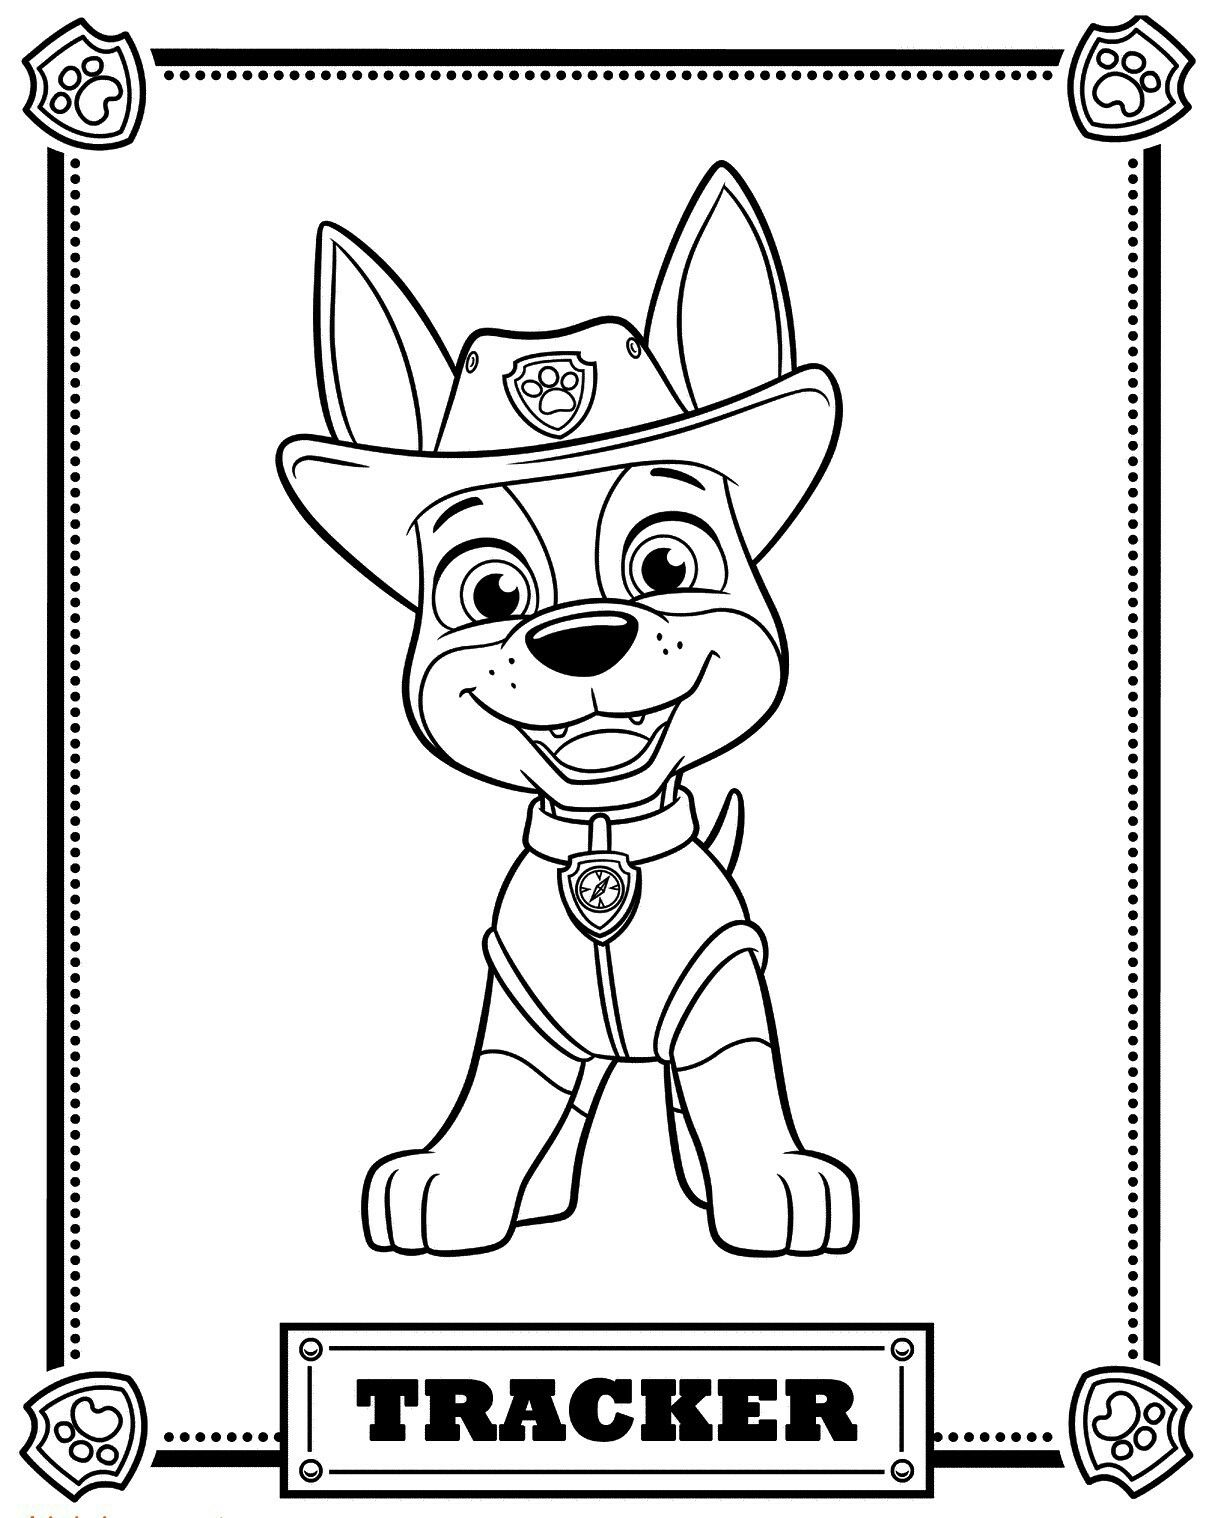 Tracker paw patrol front (With images) Paw patrol